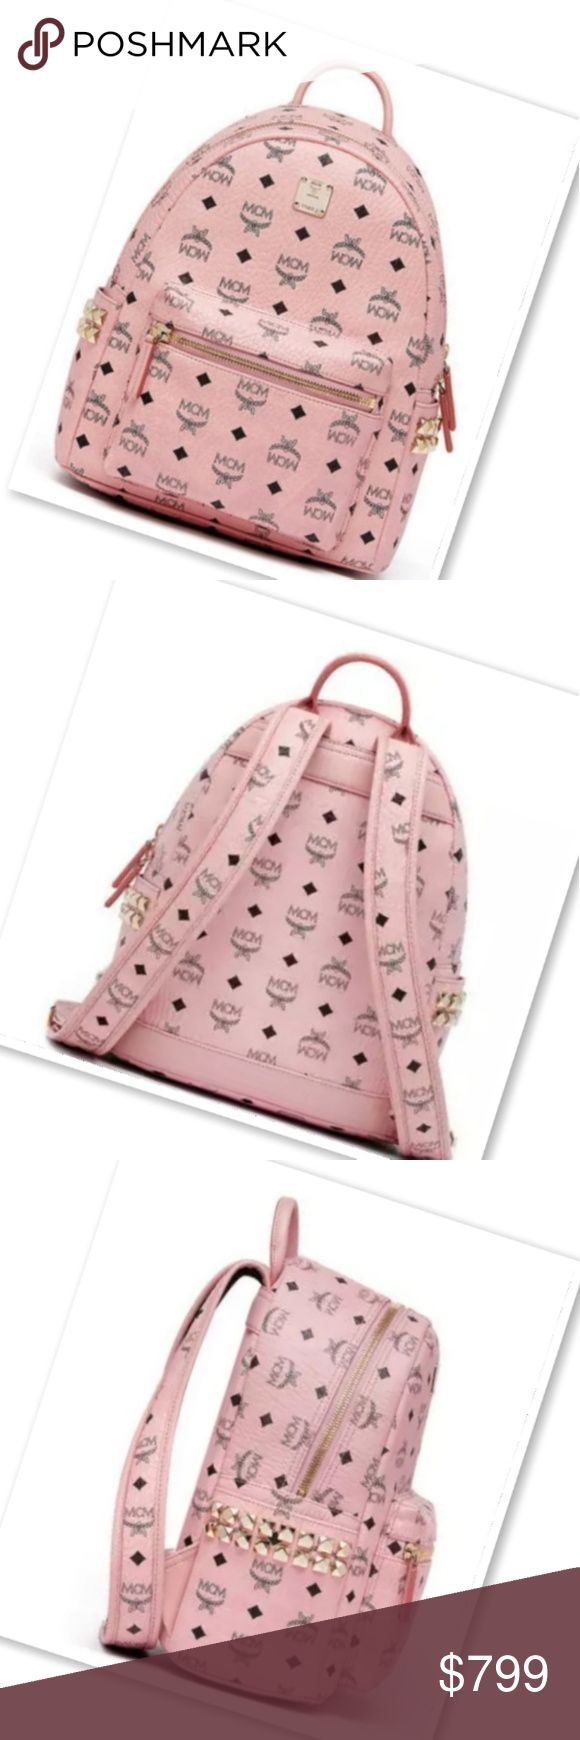 MCM Small Bag Authentic MCM Small Side Studded Backpack  No Trades  Brand New Posh HQ will authenticate  Price is Firm mcm Bags Backpacks